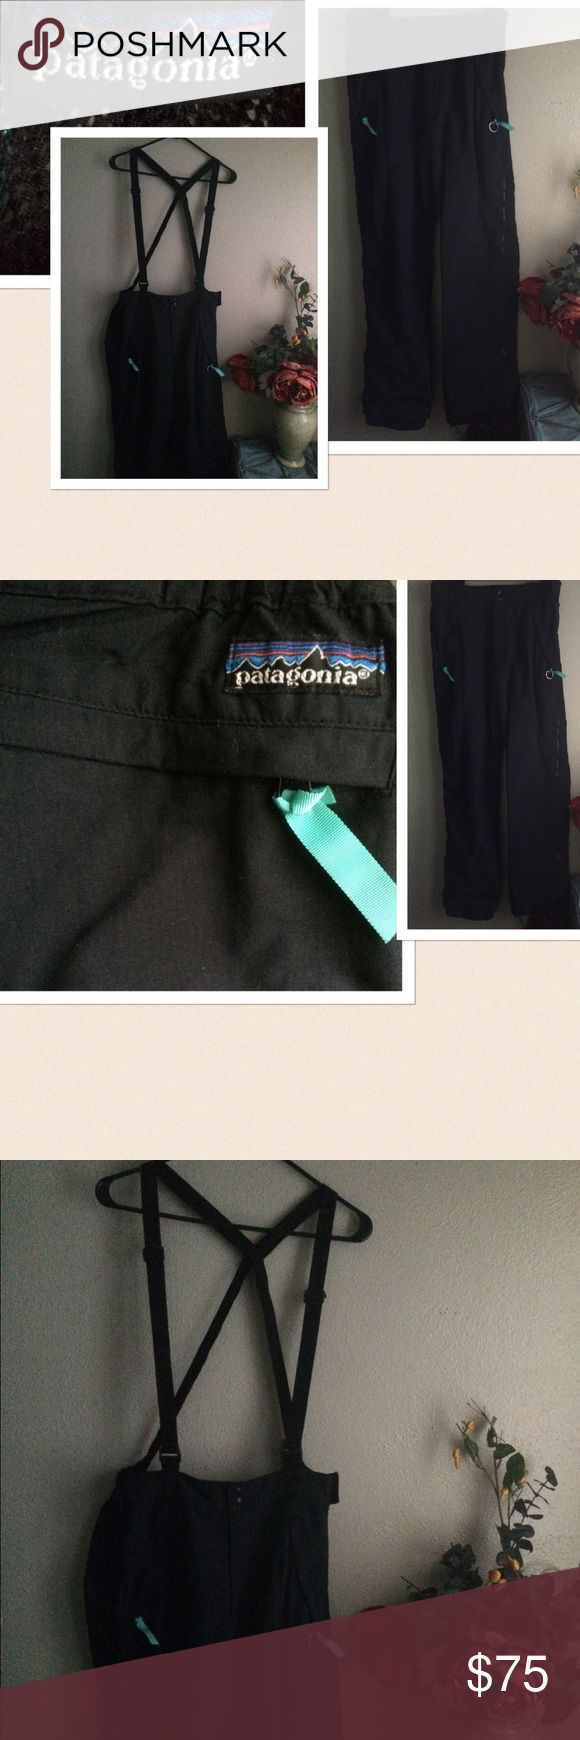 "Patagonia Ski Snow Bib Shell Overall Pants Unisex Patagonia Winter Snowboard Ski Bib Pants. Maybe unisex. Side zipper from top to bottom. 2 zipper side pockets and one at the back. 1 zipper back pocket. Adjustable waist with snap button closure. Size: 34. Length from pants waist: 42.5"" Seam: 32.5"". Preowned with some drag marks at the bottom. Otherwise in Great condition. If this condition is not right for you do not purchase. Patagonia Pants"